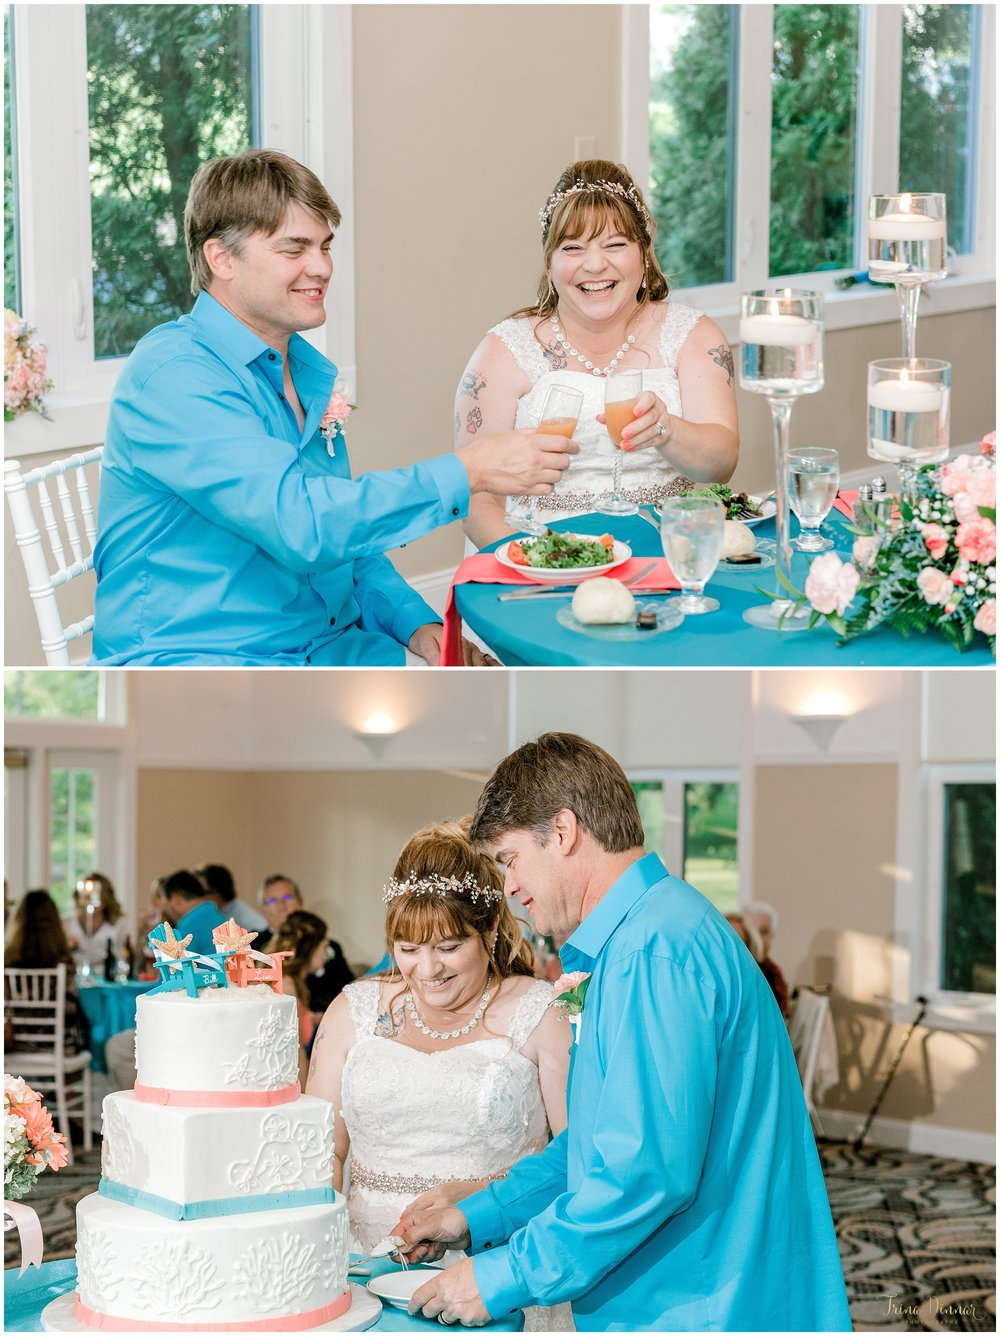 Toasts and cake cutting wedding photos